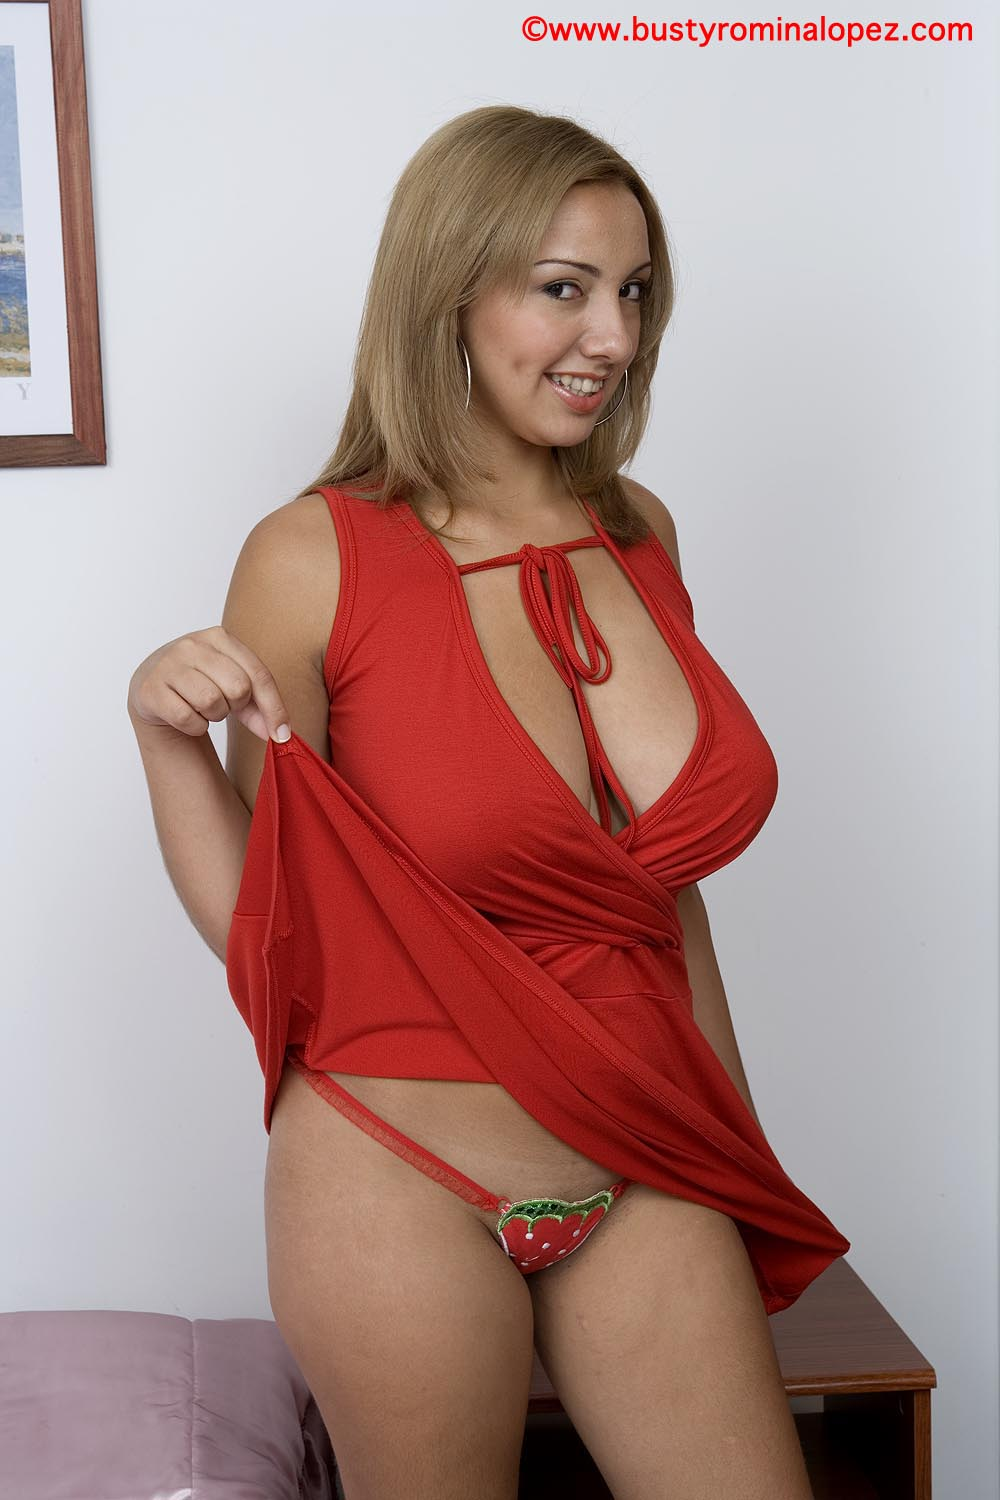 click here to see more paola rios her website